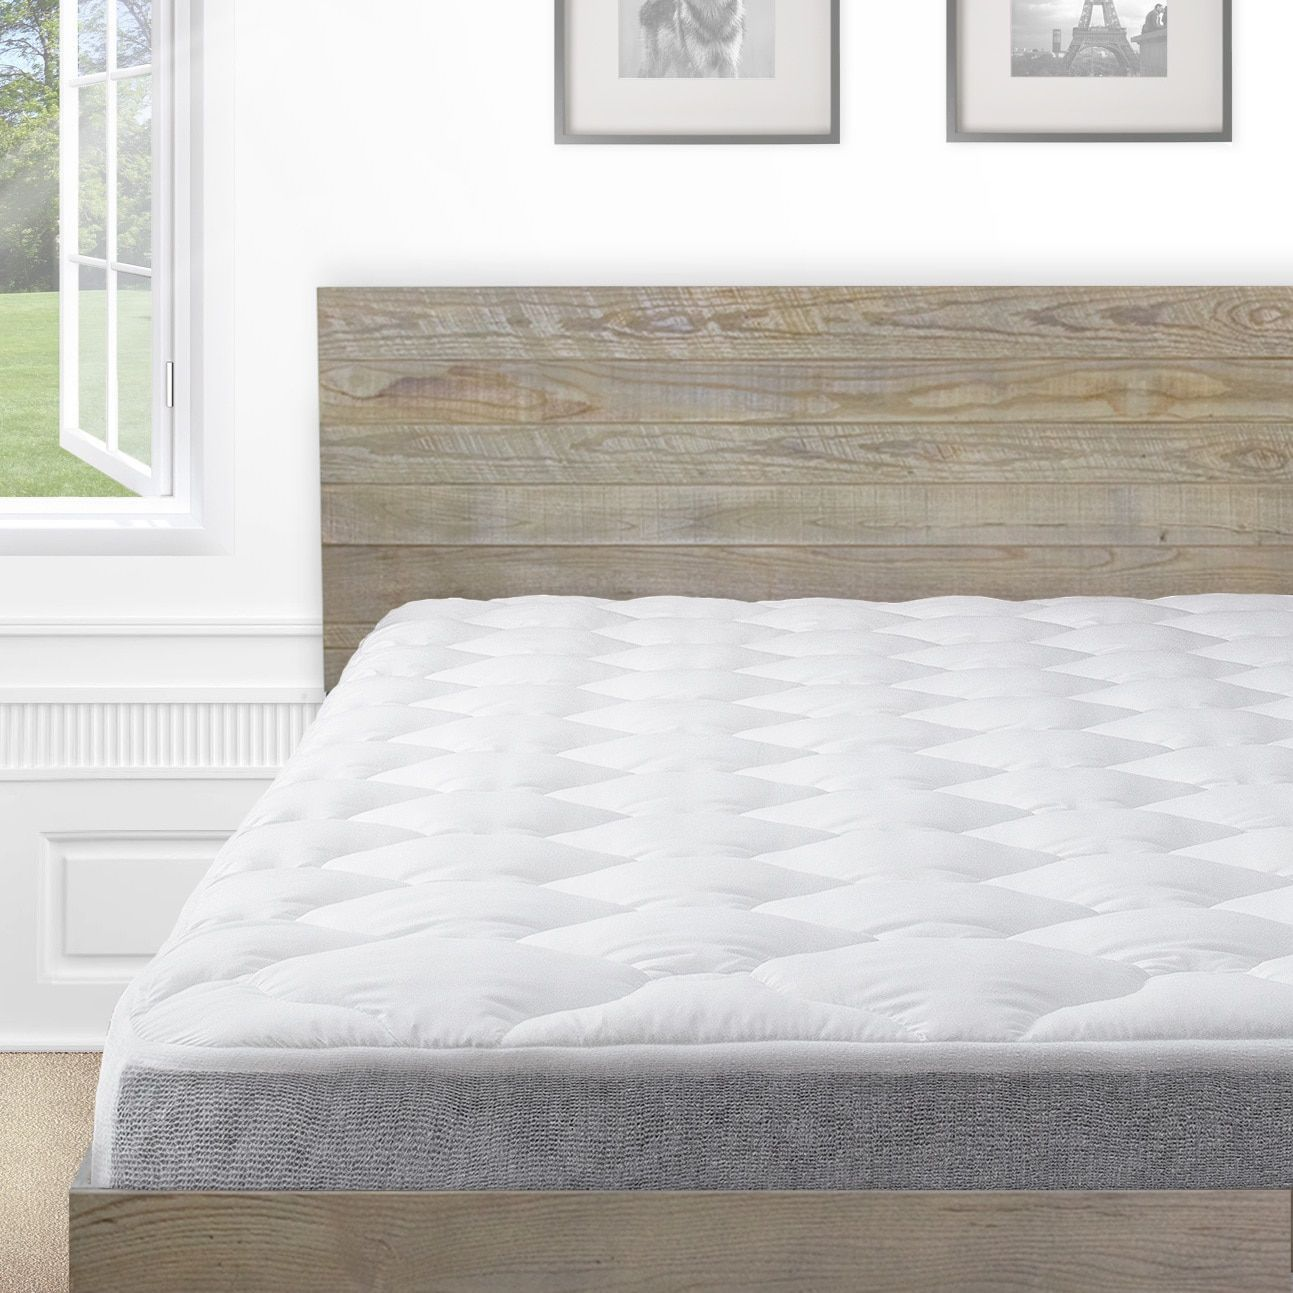 Kotter Home Barnwood Platform Bed Frame And Headboard Bed Frame Headboard Industrial